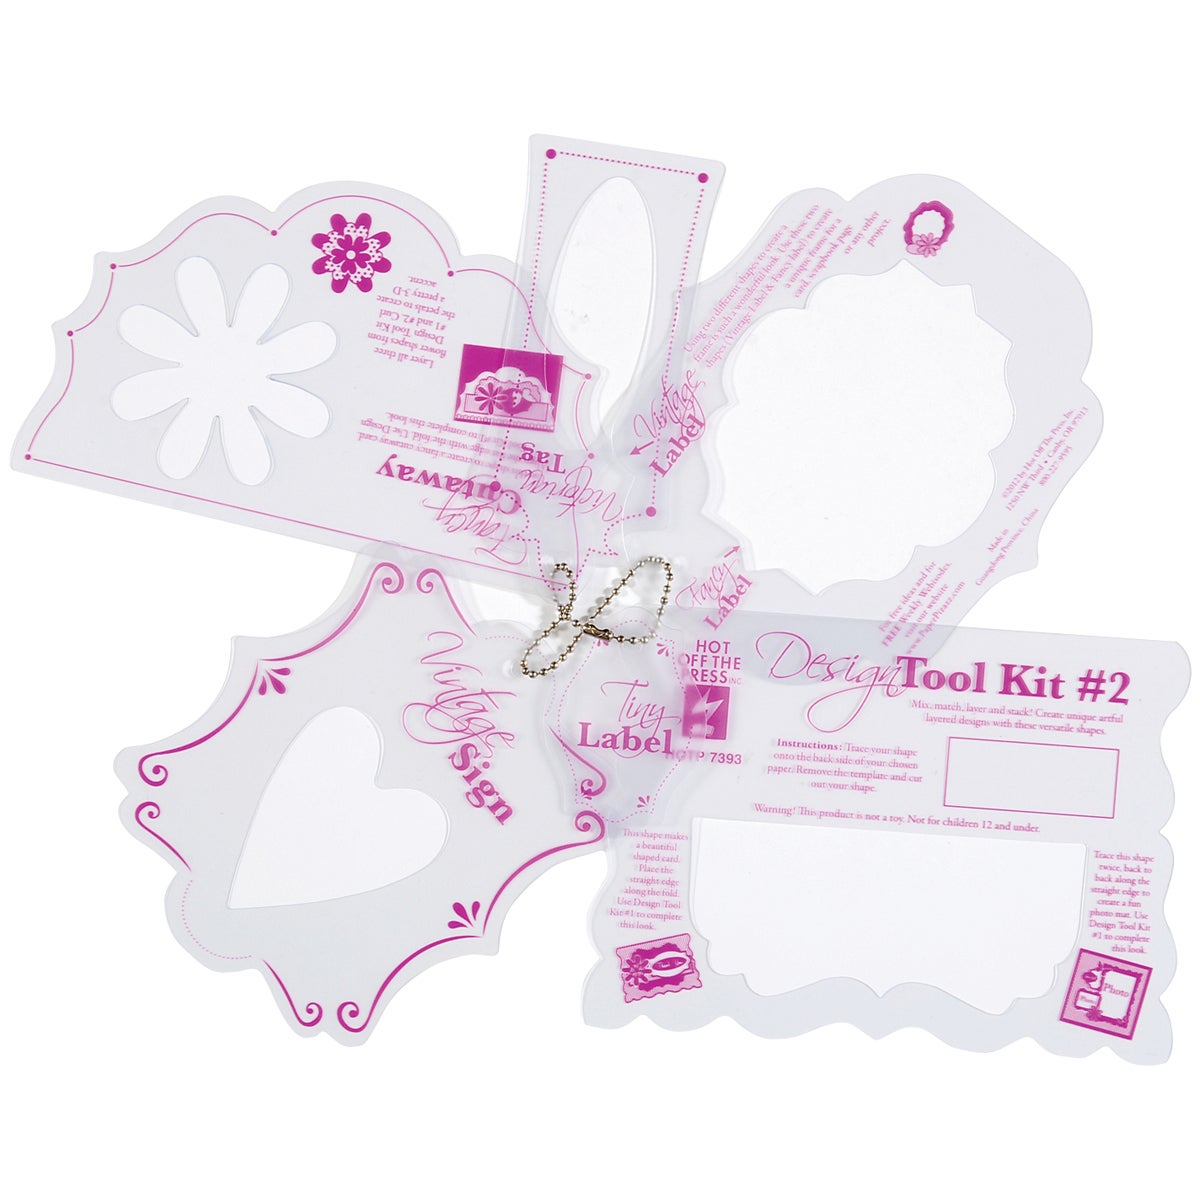 Hot Off The Press Templates 12X12IN-Design Tool Kit #2 at Sears.com